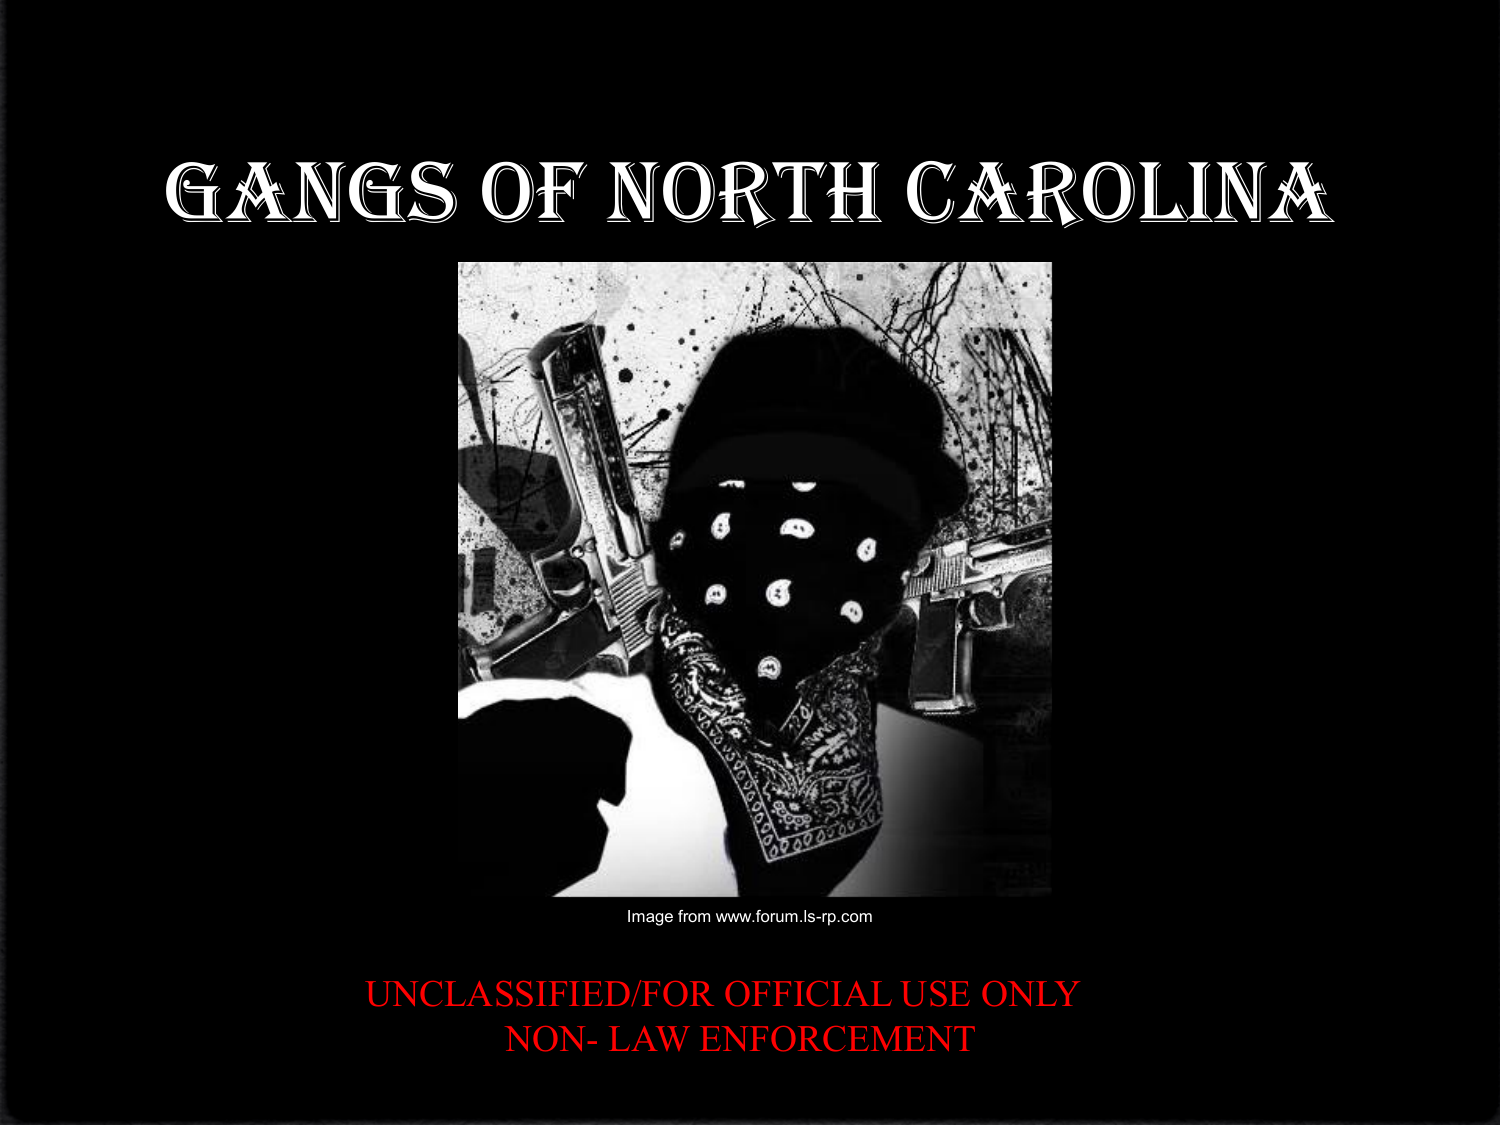 Gangs of North Carolina